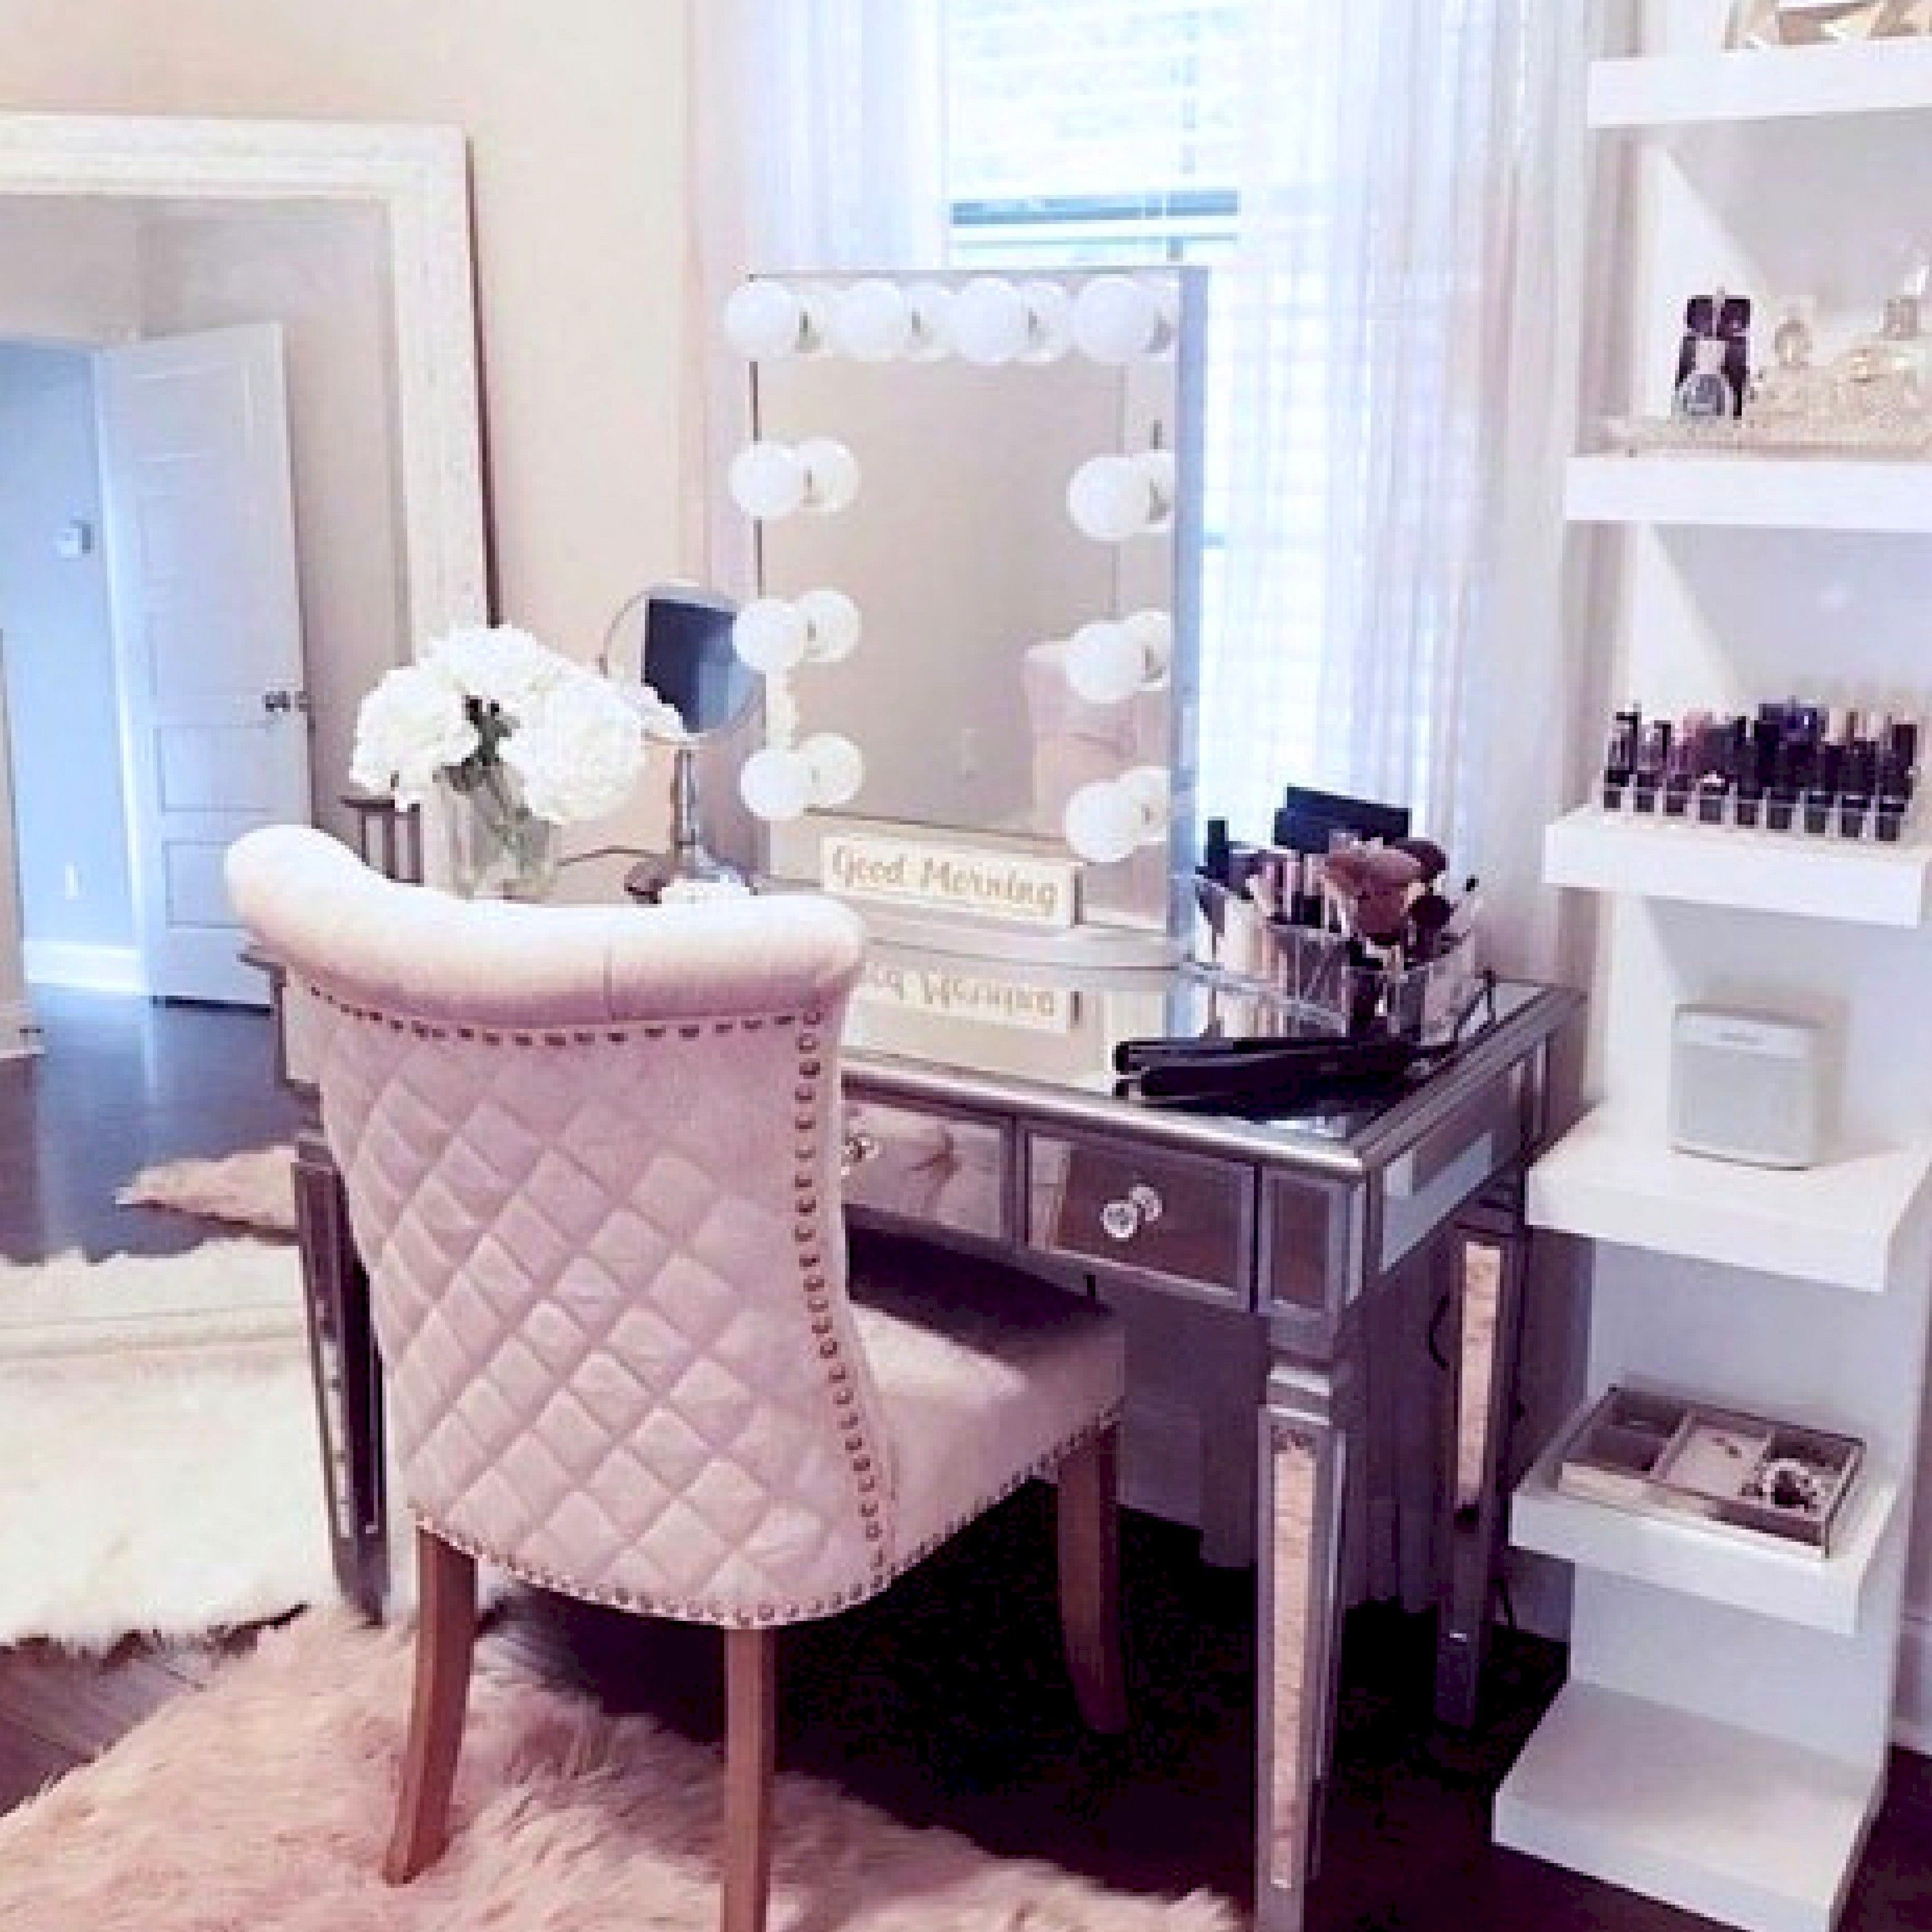 Salon Interior Design Pictures Hair And Beauty Salon Interior Design Hair Salon Interior Design Software Bes In 2020 Beauty Room Mirrored Vanity Table Room Planner